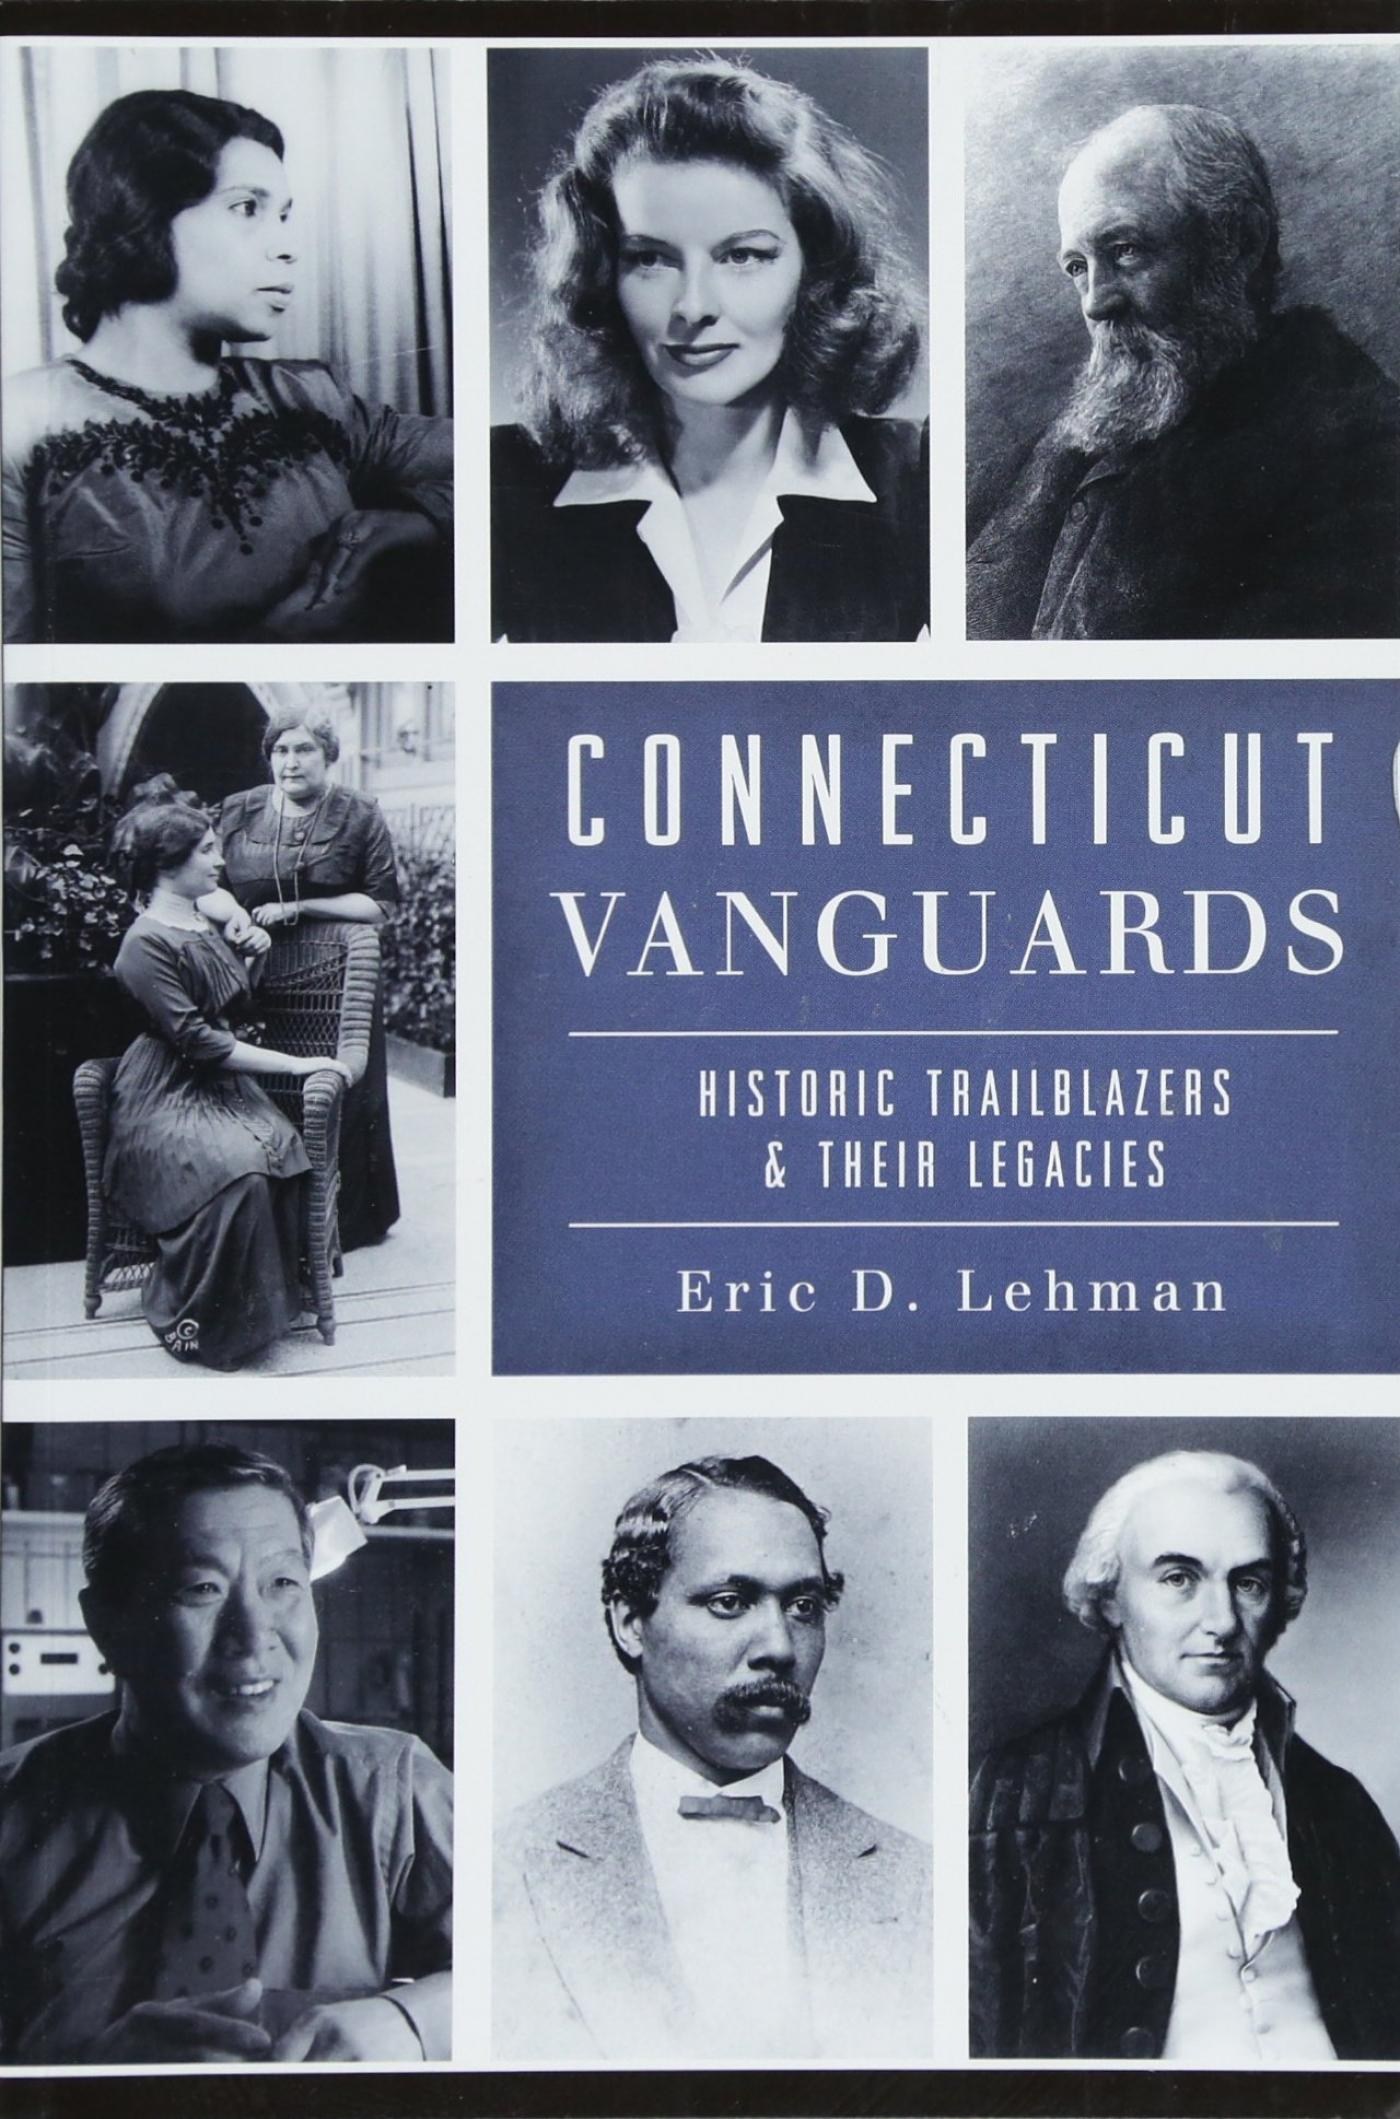 <h2>Connecticut Vanguards by Dr. Eric Lehman</h2> <p>This lecture and book signing chronicles the l